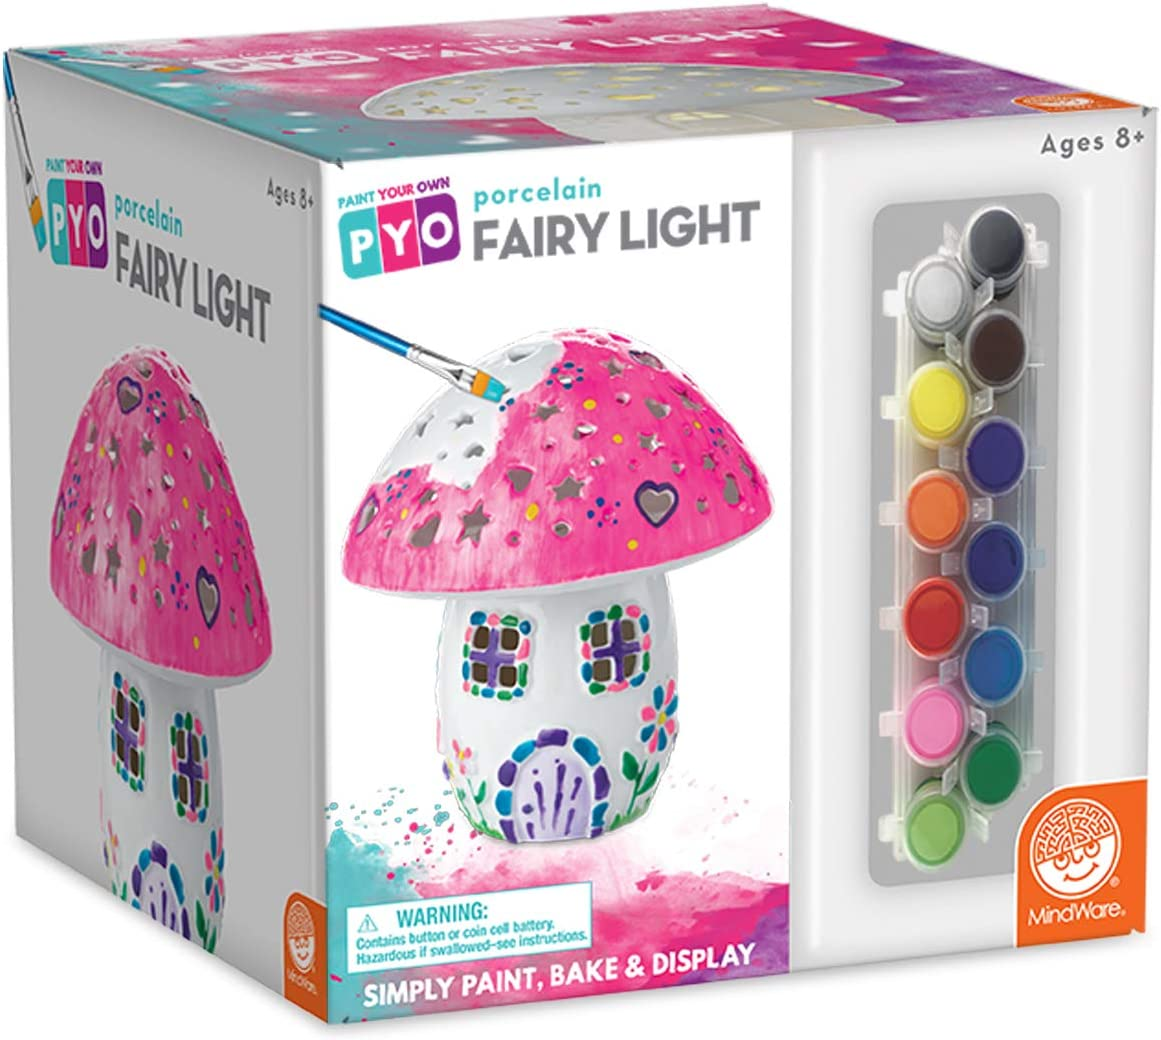 MindWare Paint Your Own Porcelain: Fairy Light with Tea Light